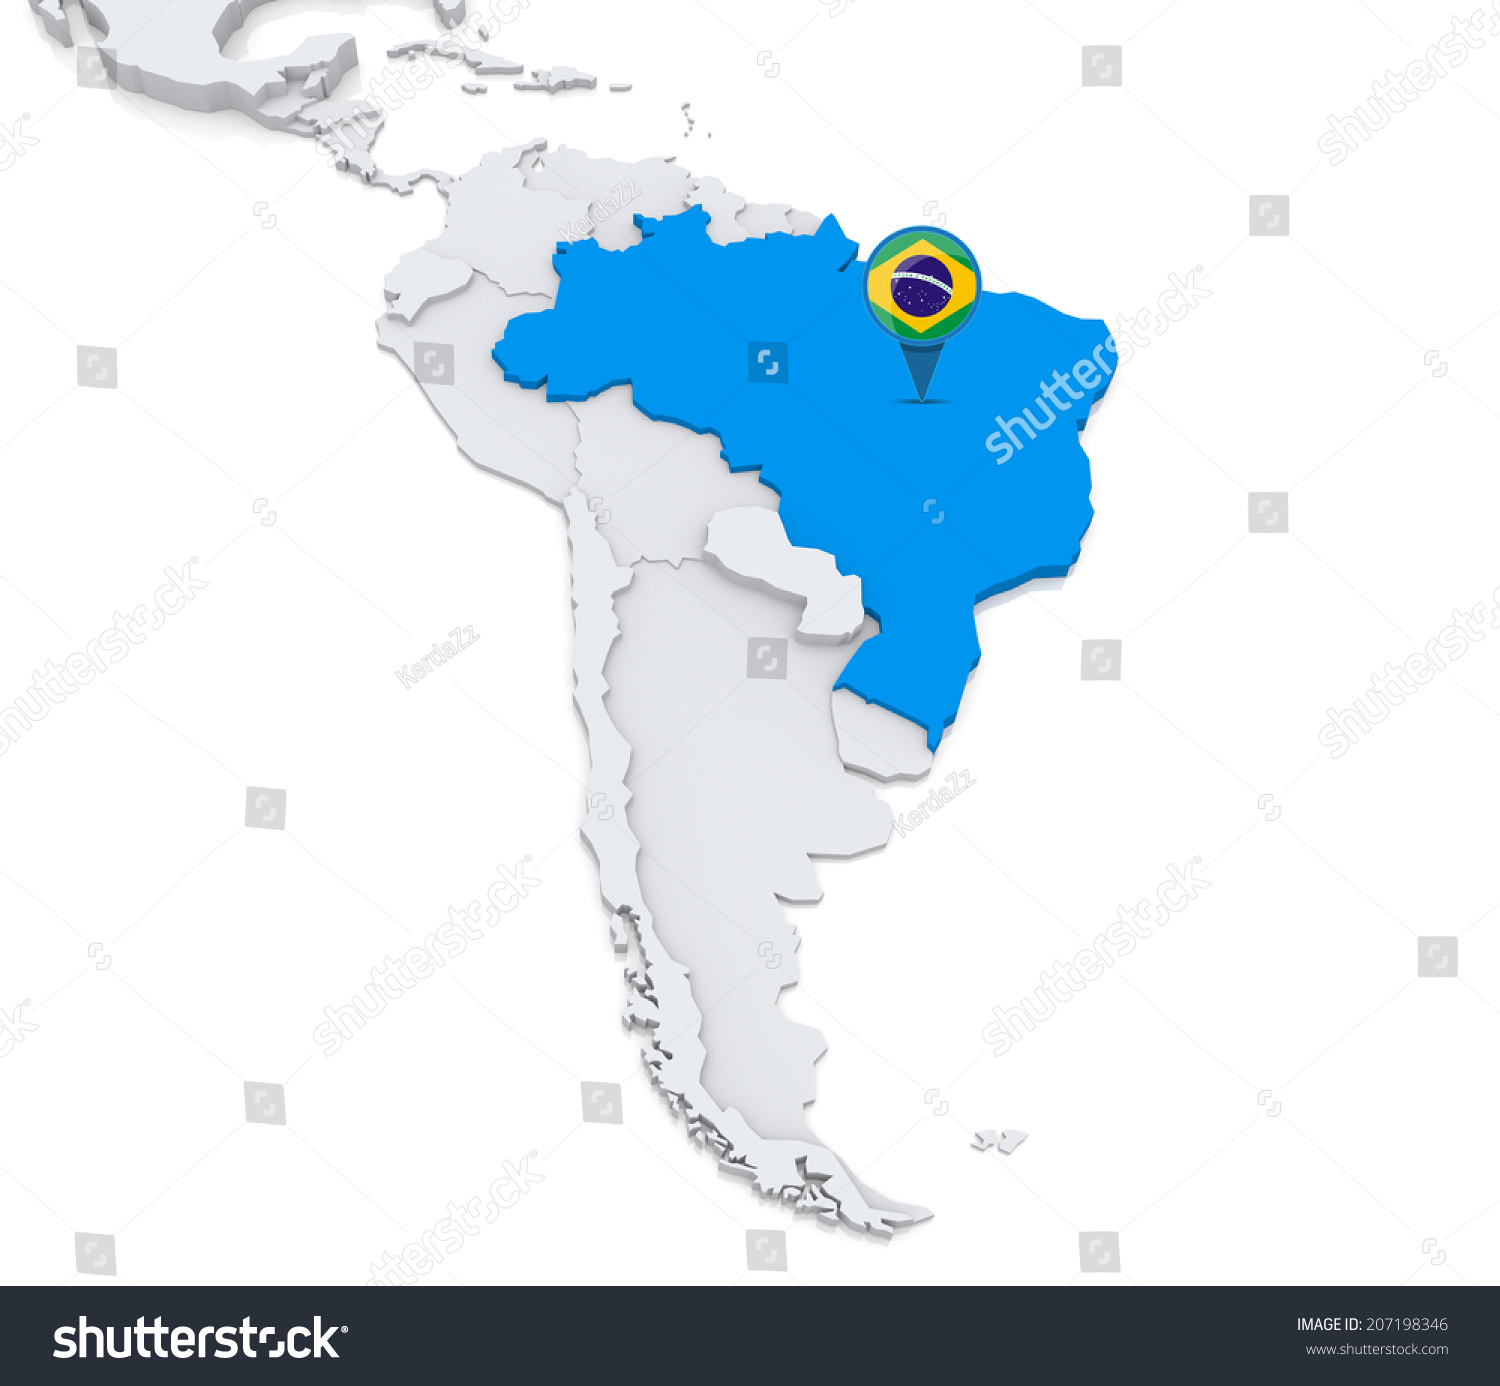 Highlighted brazil on map south america stock illustration 207198346 highlighted brazil on map of south america with national flag gumiabroncs Images